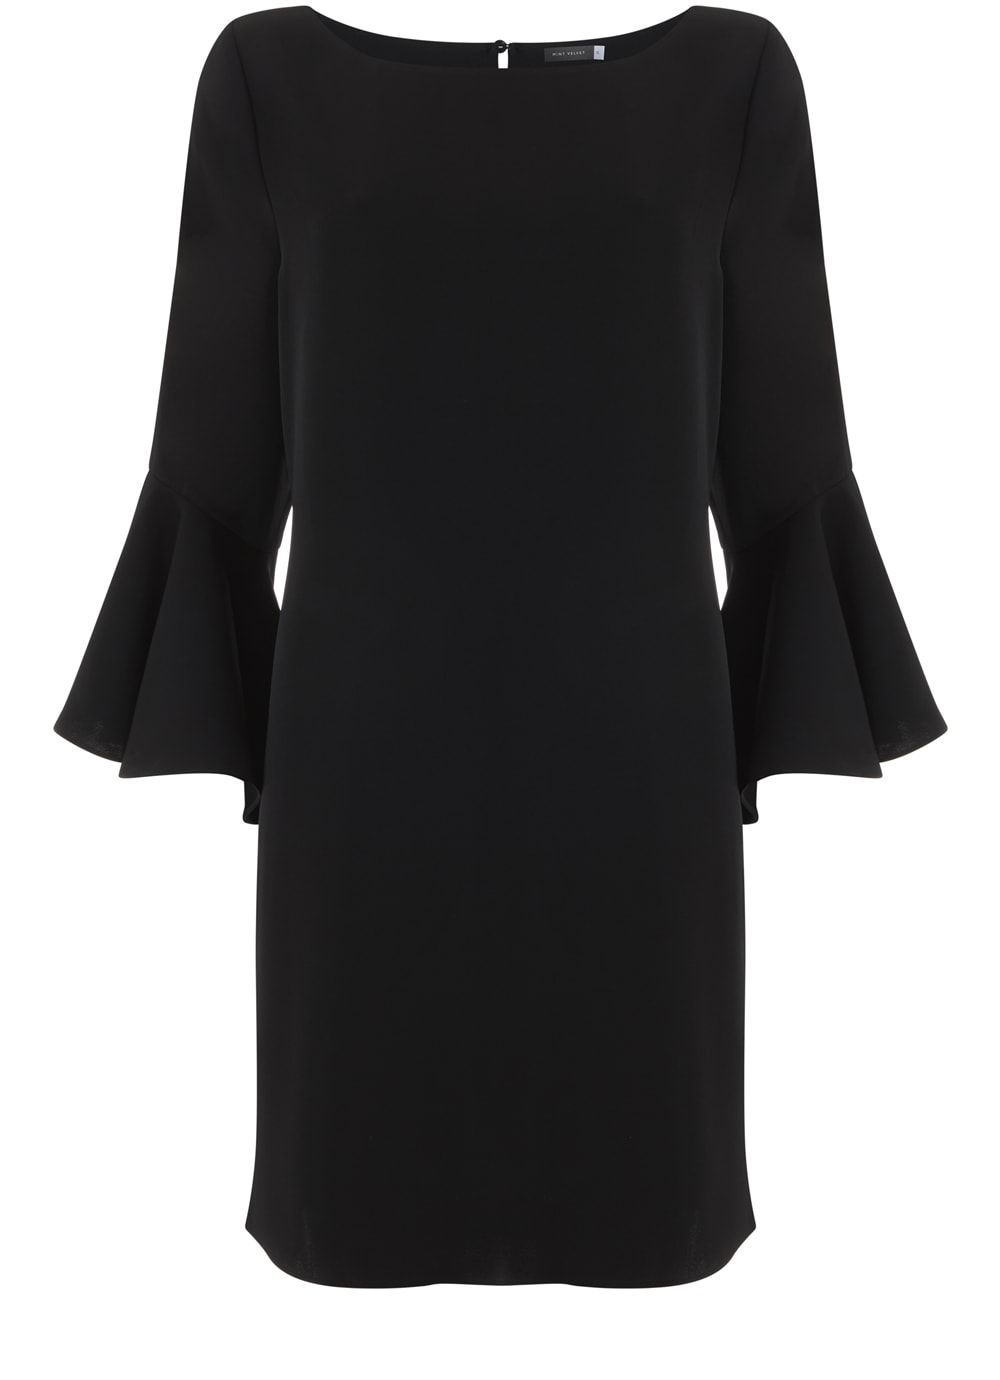 Black Fluted Sleeve Dress, Black - style: shift; neckline: round neck; sleeve style: bell sleeve; fit: tailored/fitted; pattern: plain; predominant colour: navy; occasions: evening; length: just above the knee; fibres: polyester/polyamide - 100%; sleeve length: long sleeve; pattern type: fabric; texture group: woven light midweight; season: s/s 2016